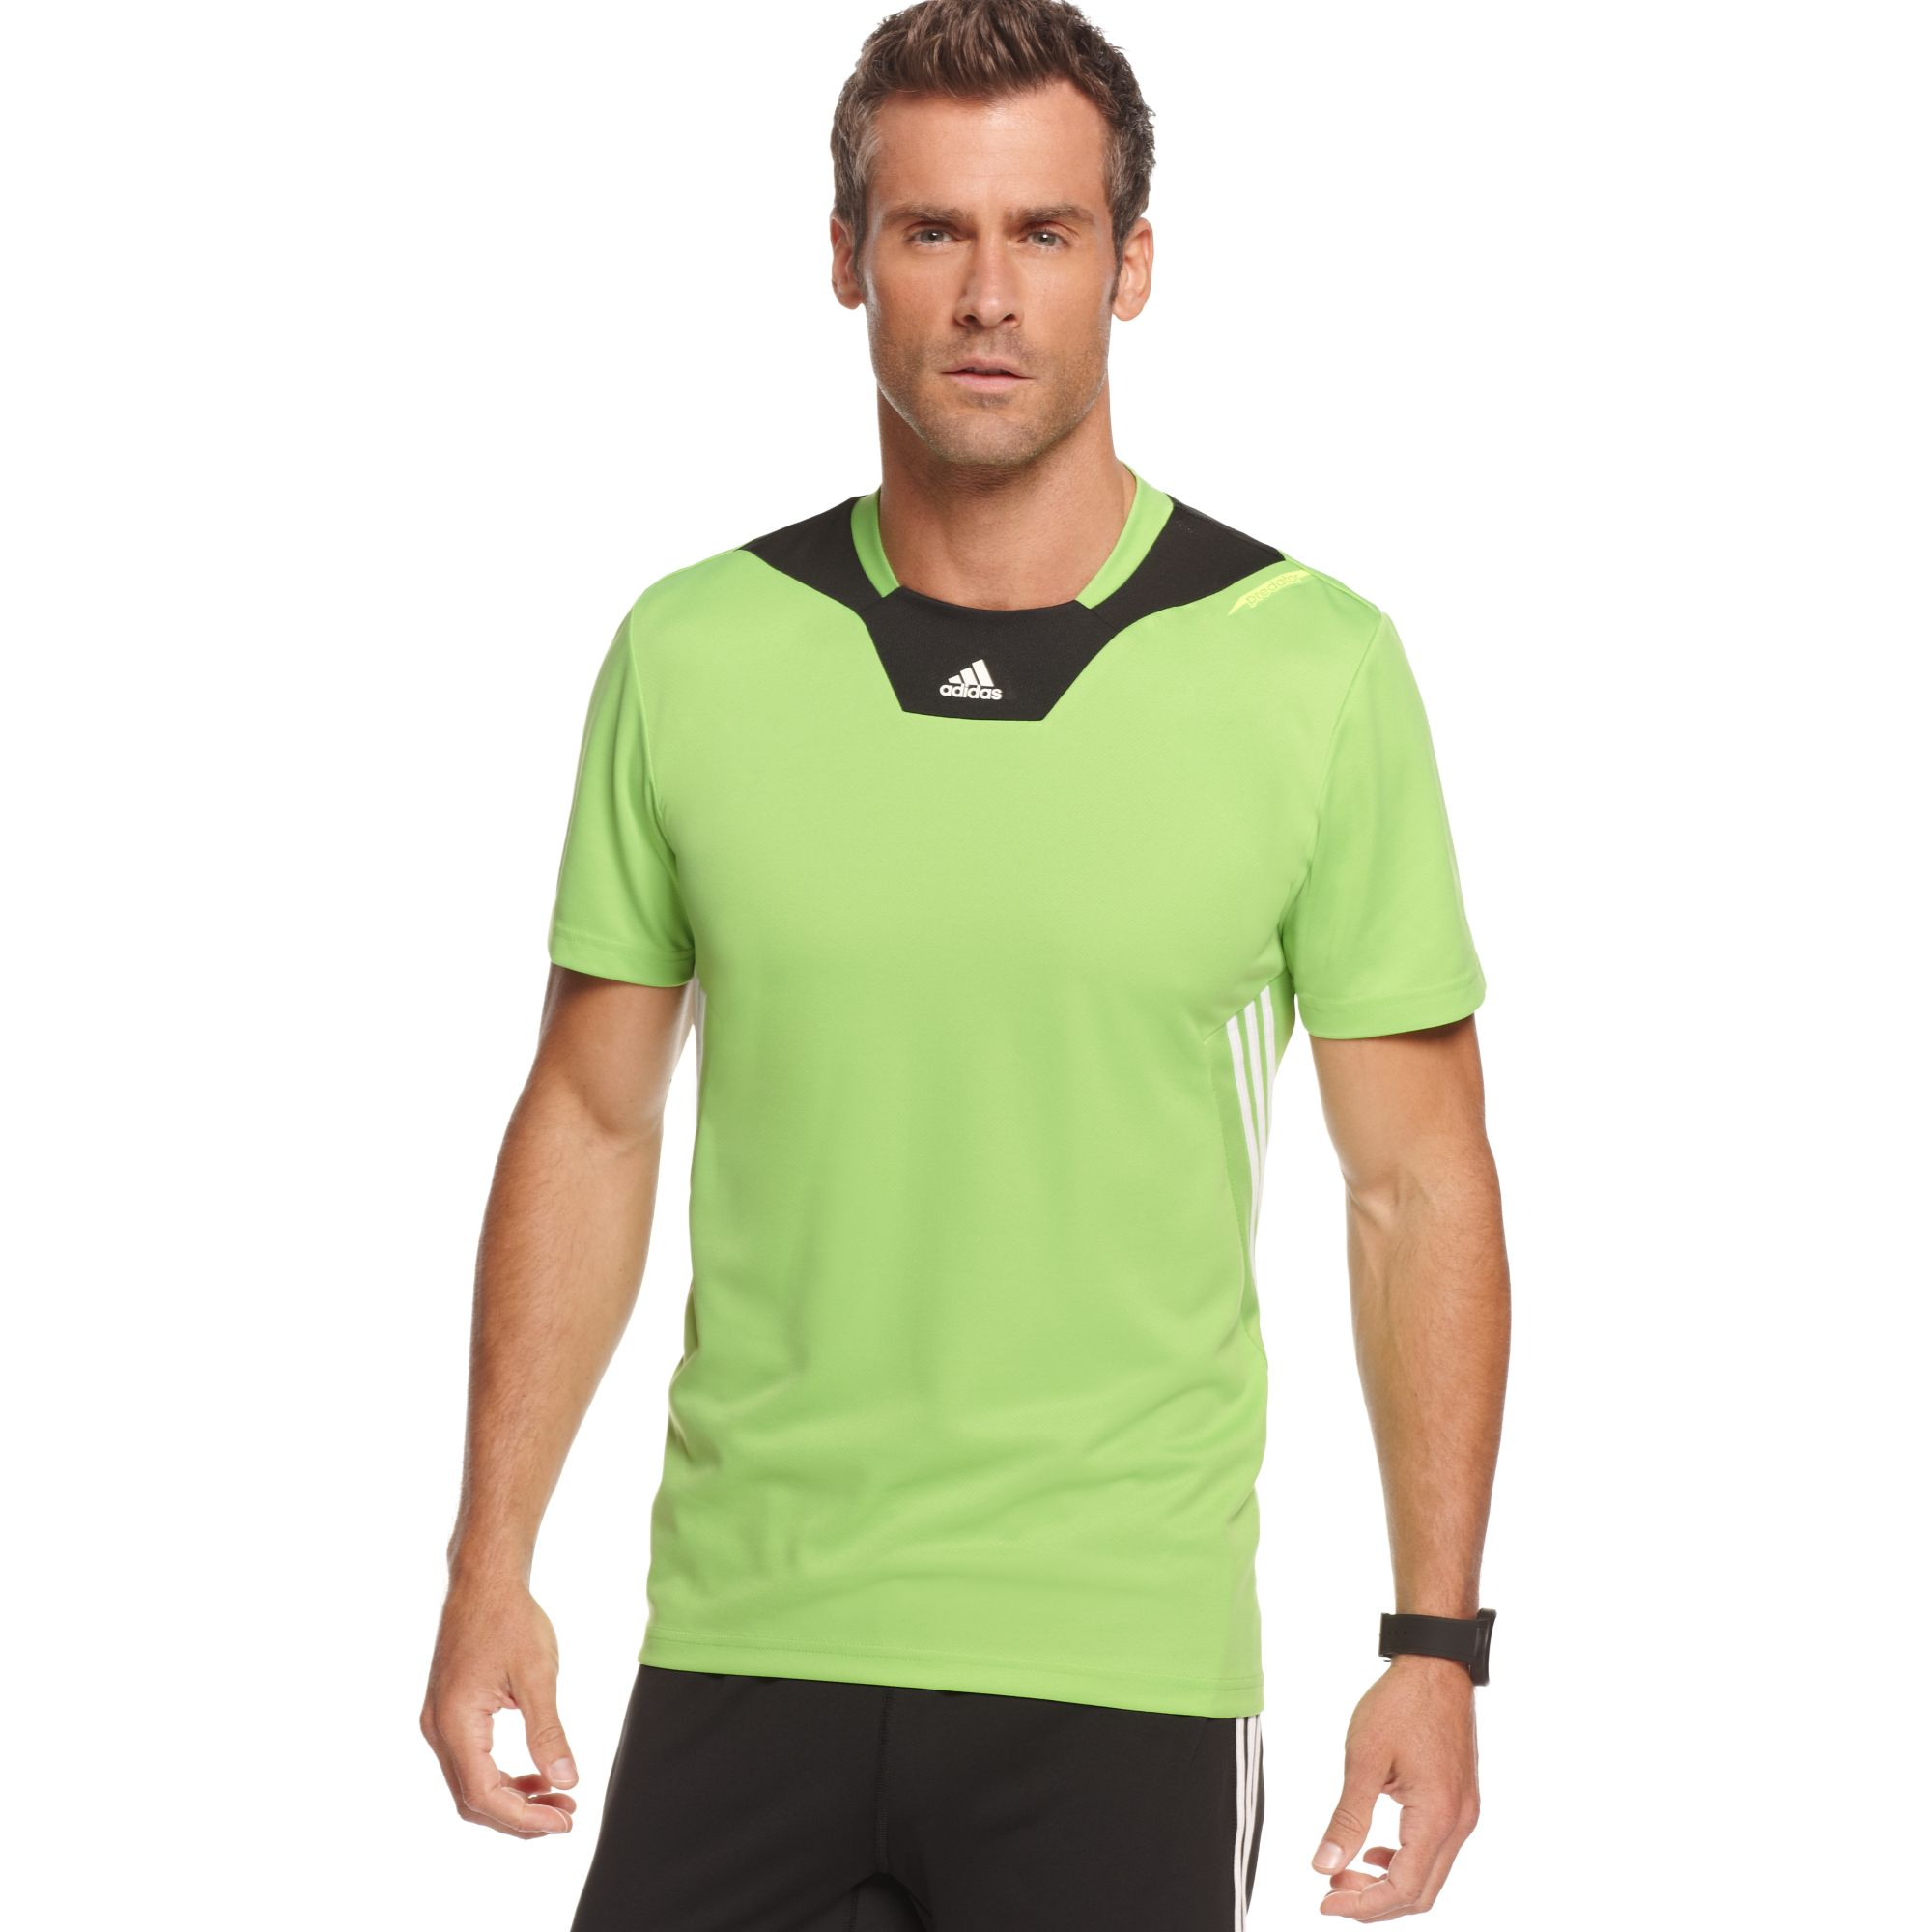 Lyst - adidas Predator Climacool Training Jersey in Green for Men 7859220e6